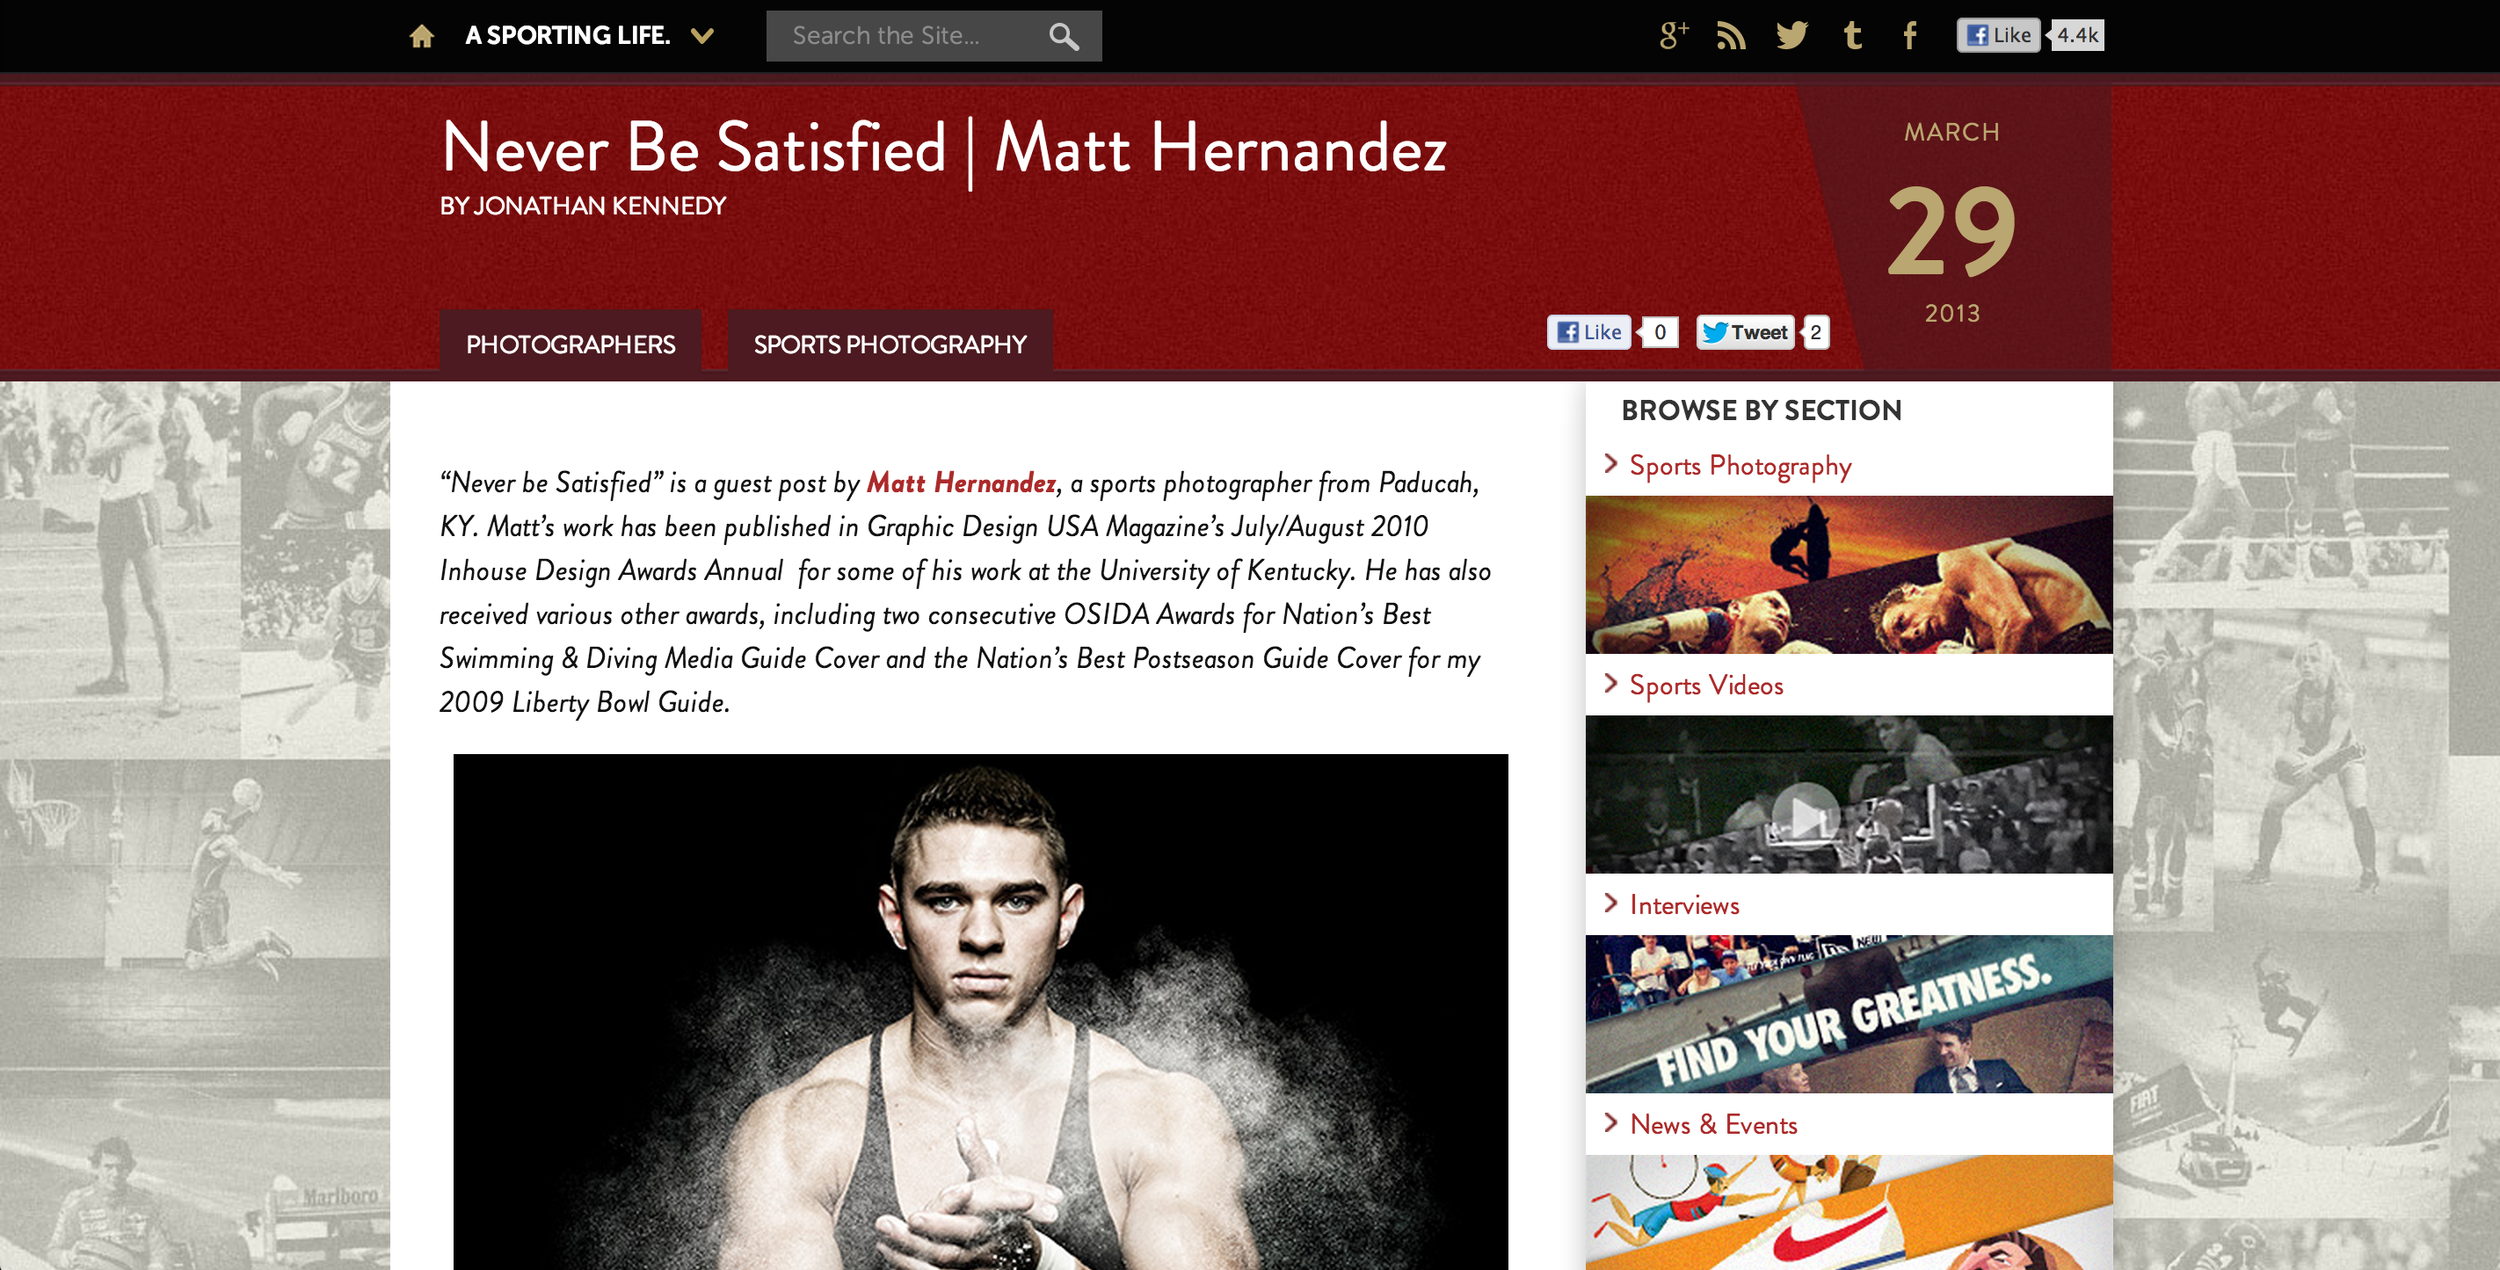 Check out my guest post over at asportinglife.com!